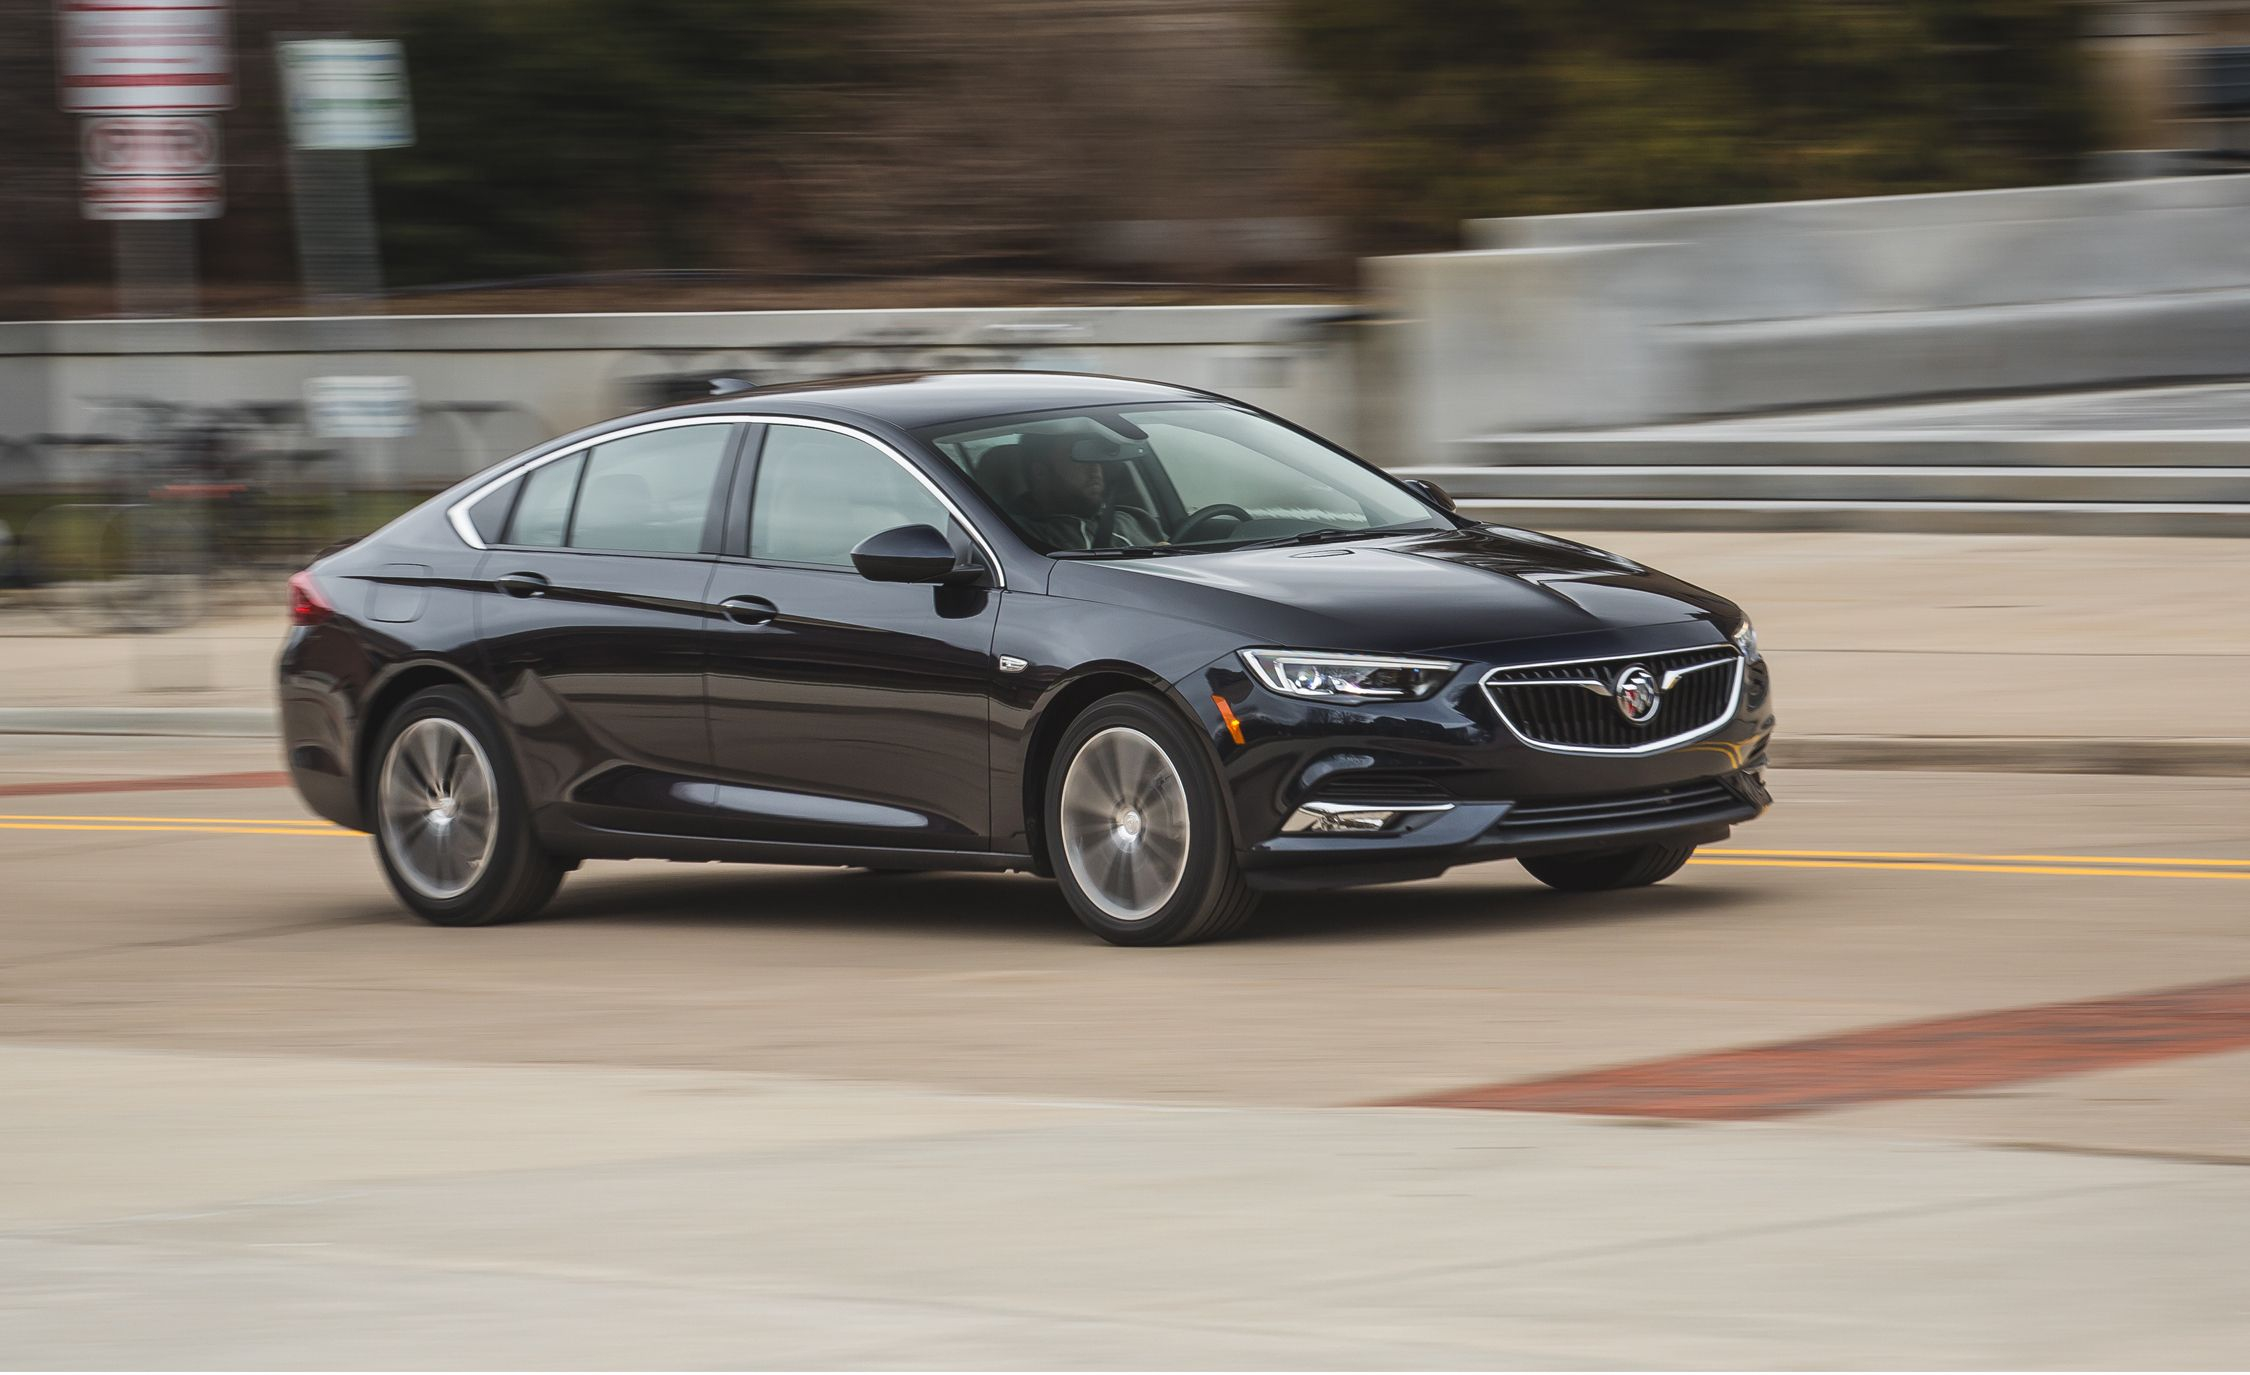 2018 Buick Regal Sportback Fwd Test | Review | Car And Driver New 2021 Buick Regal Mpg, Engine, Owners Manual